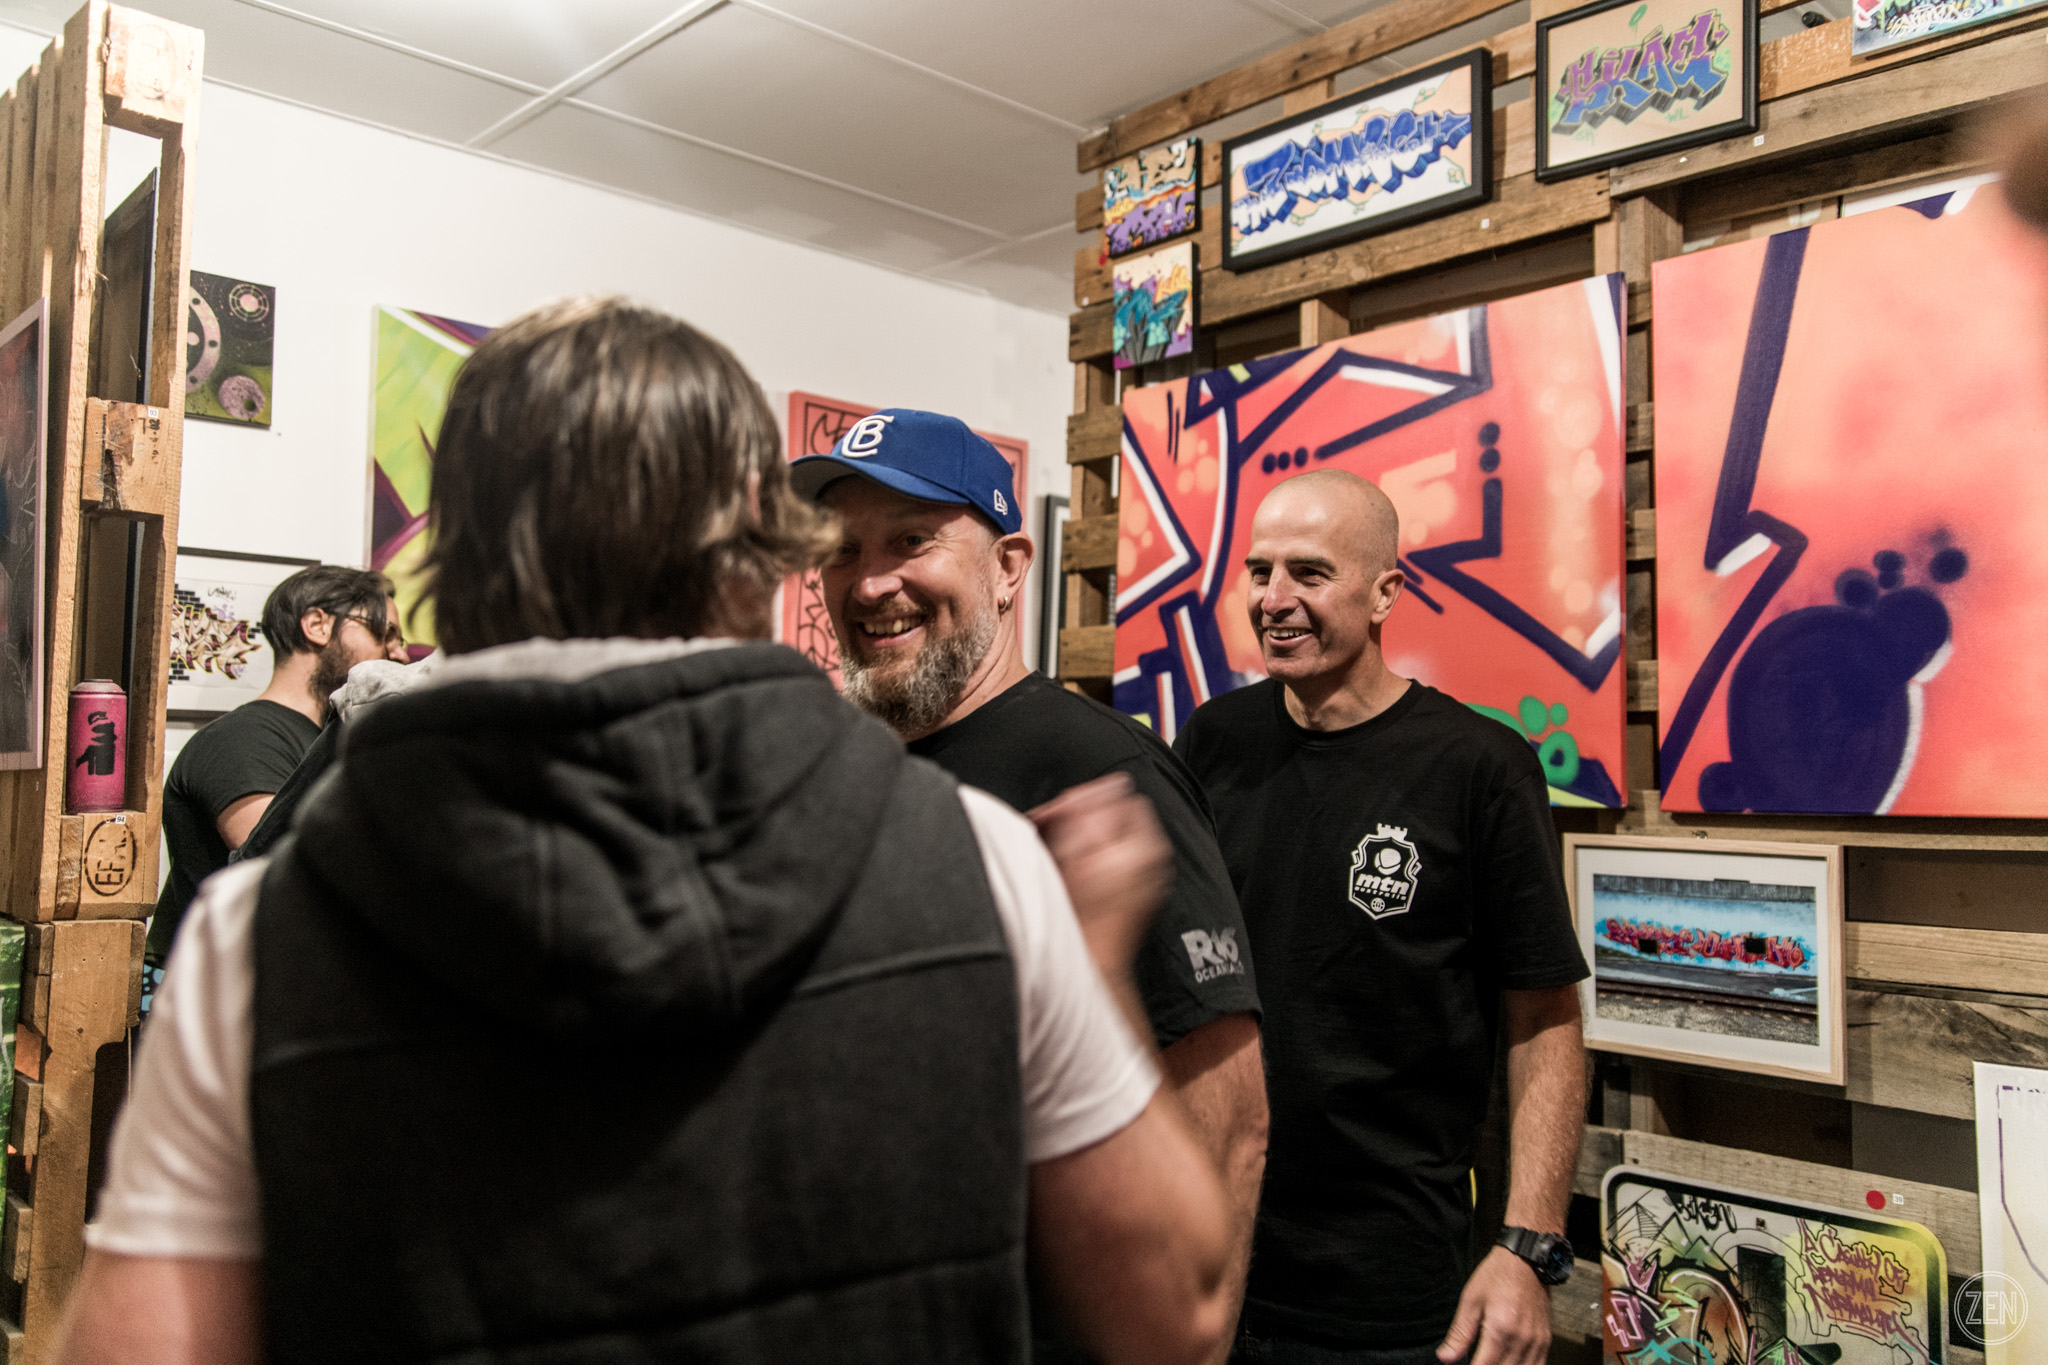 2019-03-30 - CAN2Canvas - Gallery448 049